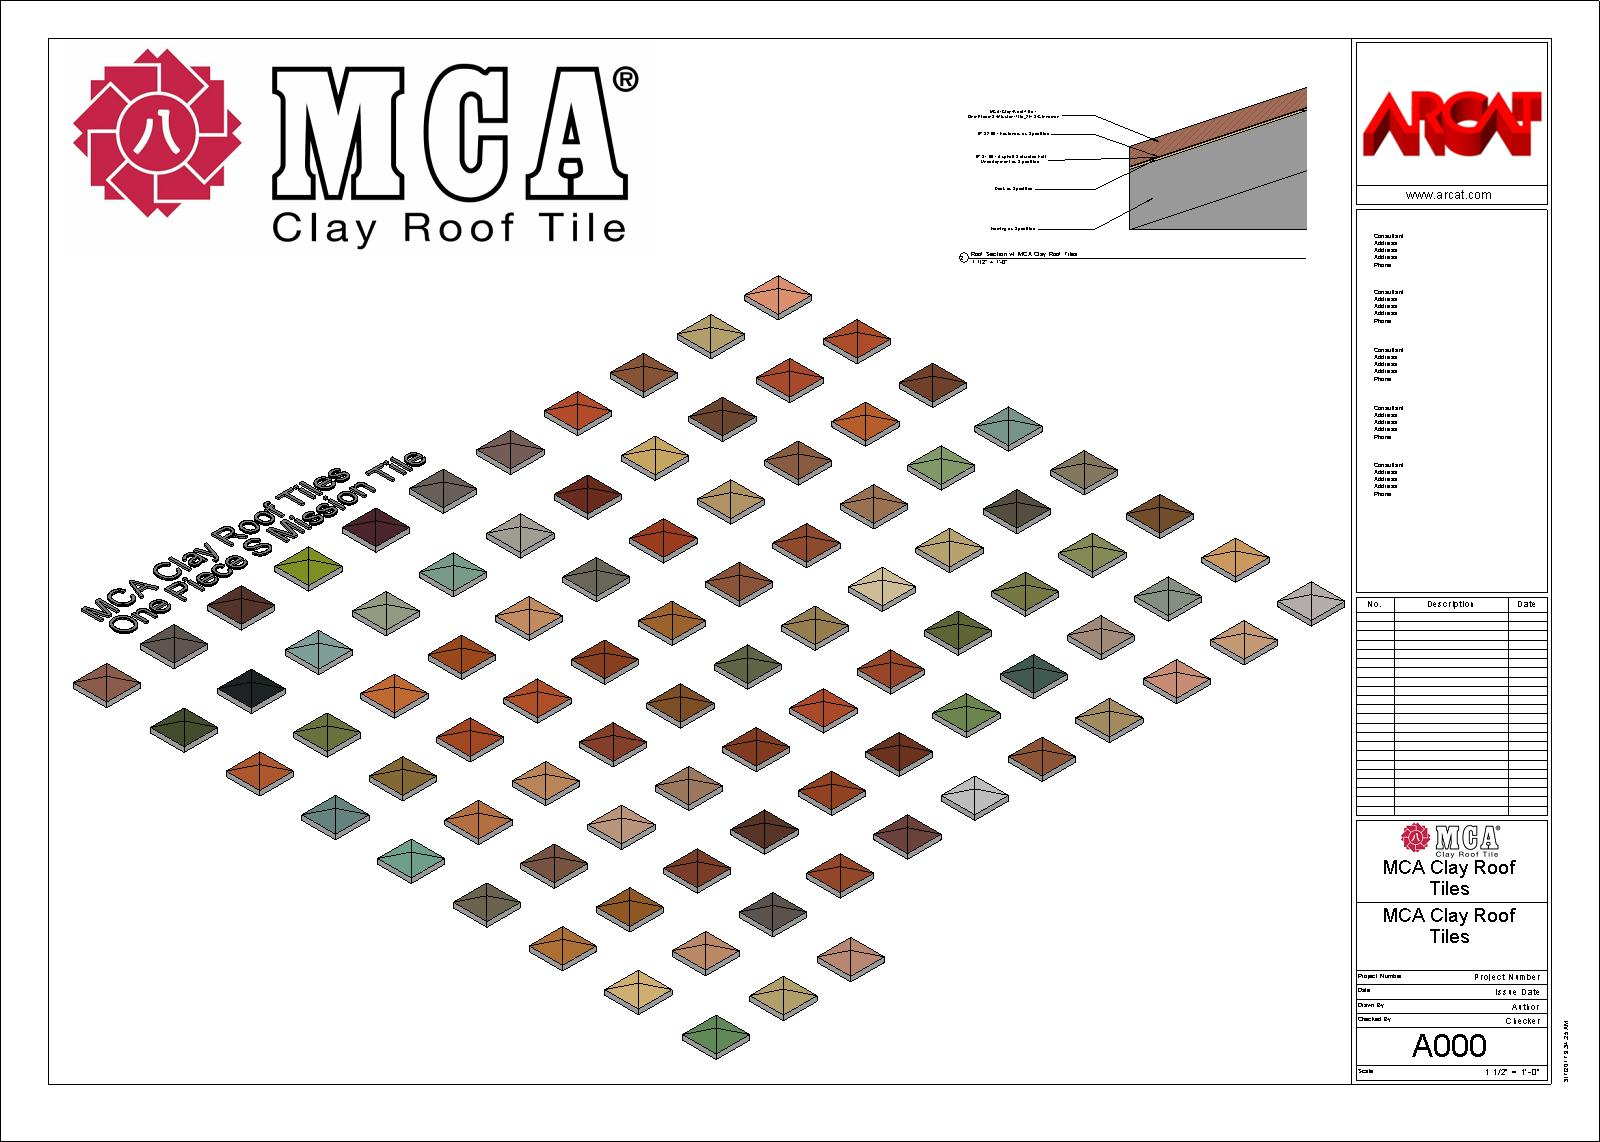 Roof Tiles - Thermal and Moisture Protection - Free BIM Objects